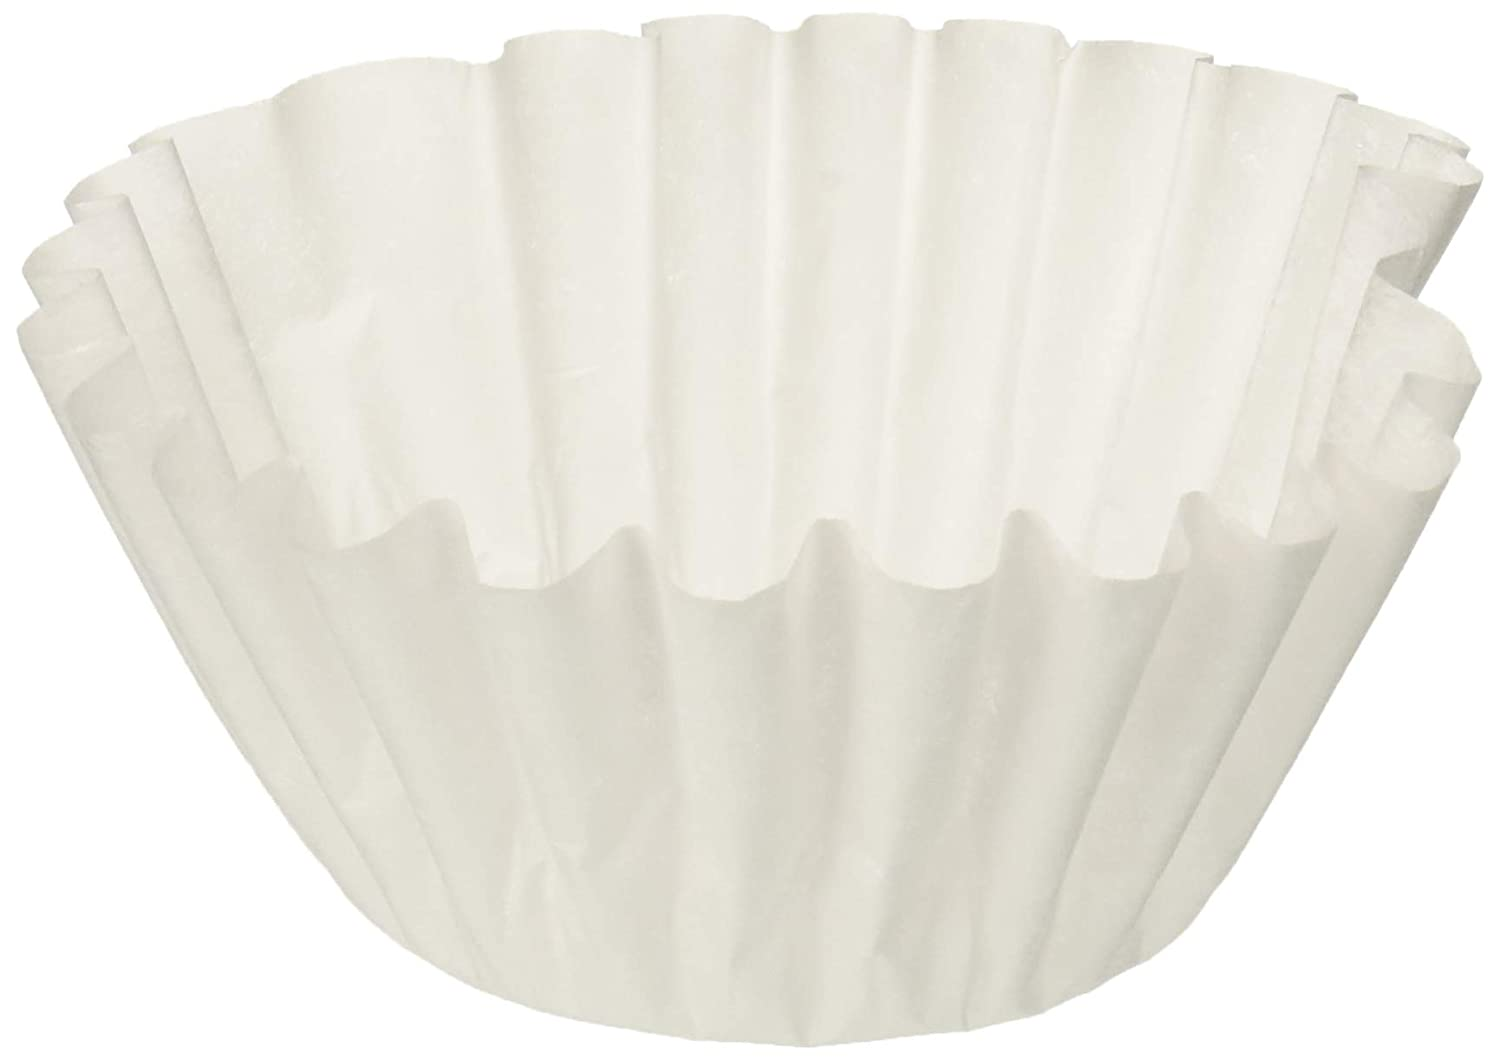 Bunn 20106 9 to 10 Cup Decanter Style Coffee Filter-1000/Case, 9 to 10 Cup White